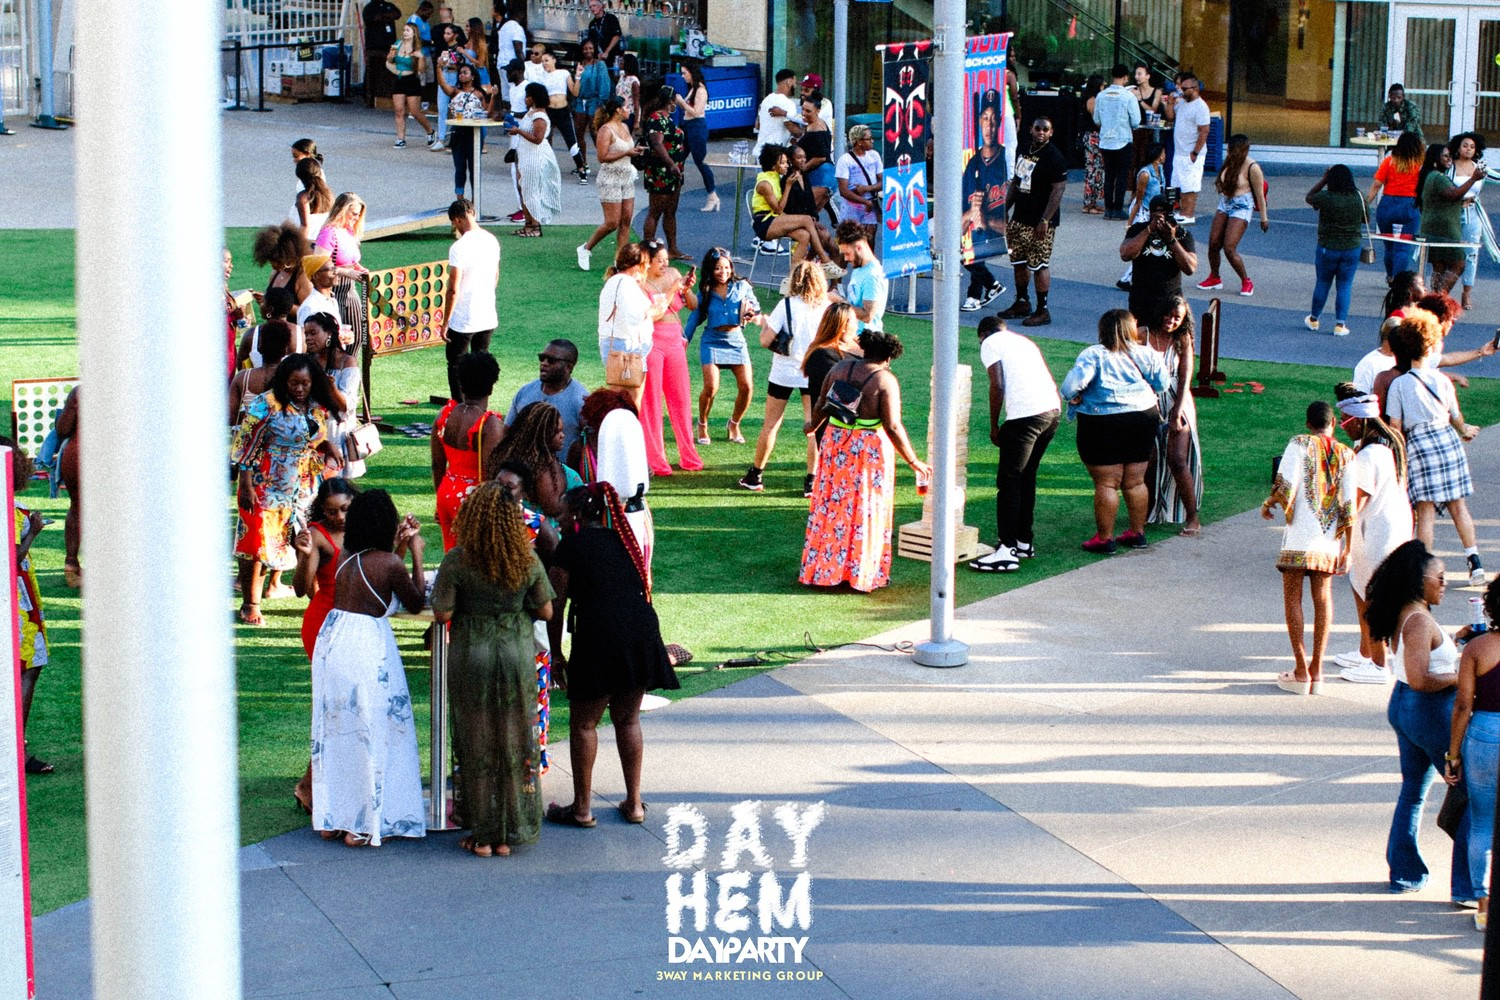 {PICS} 08.18.19 – Dayhem Day Party @ Target Field {Part 1}